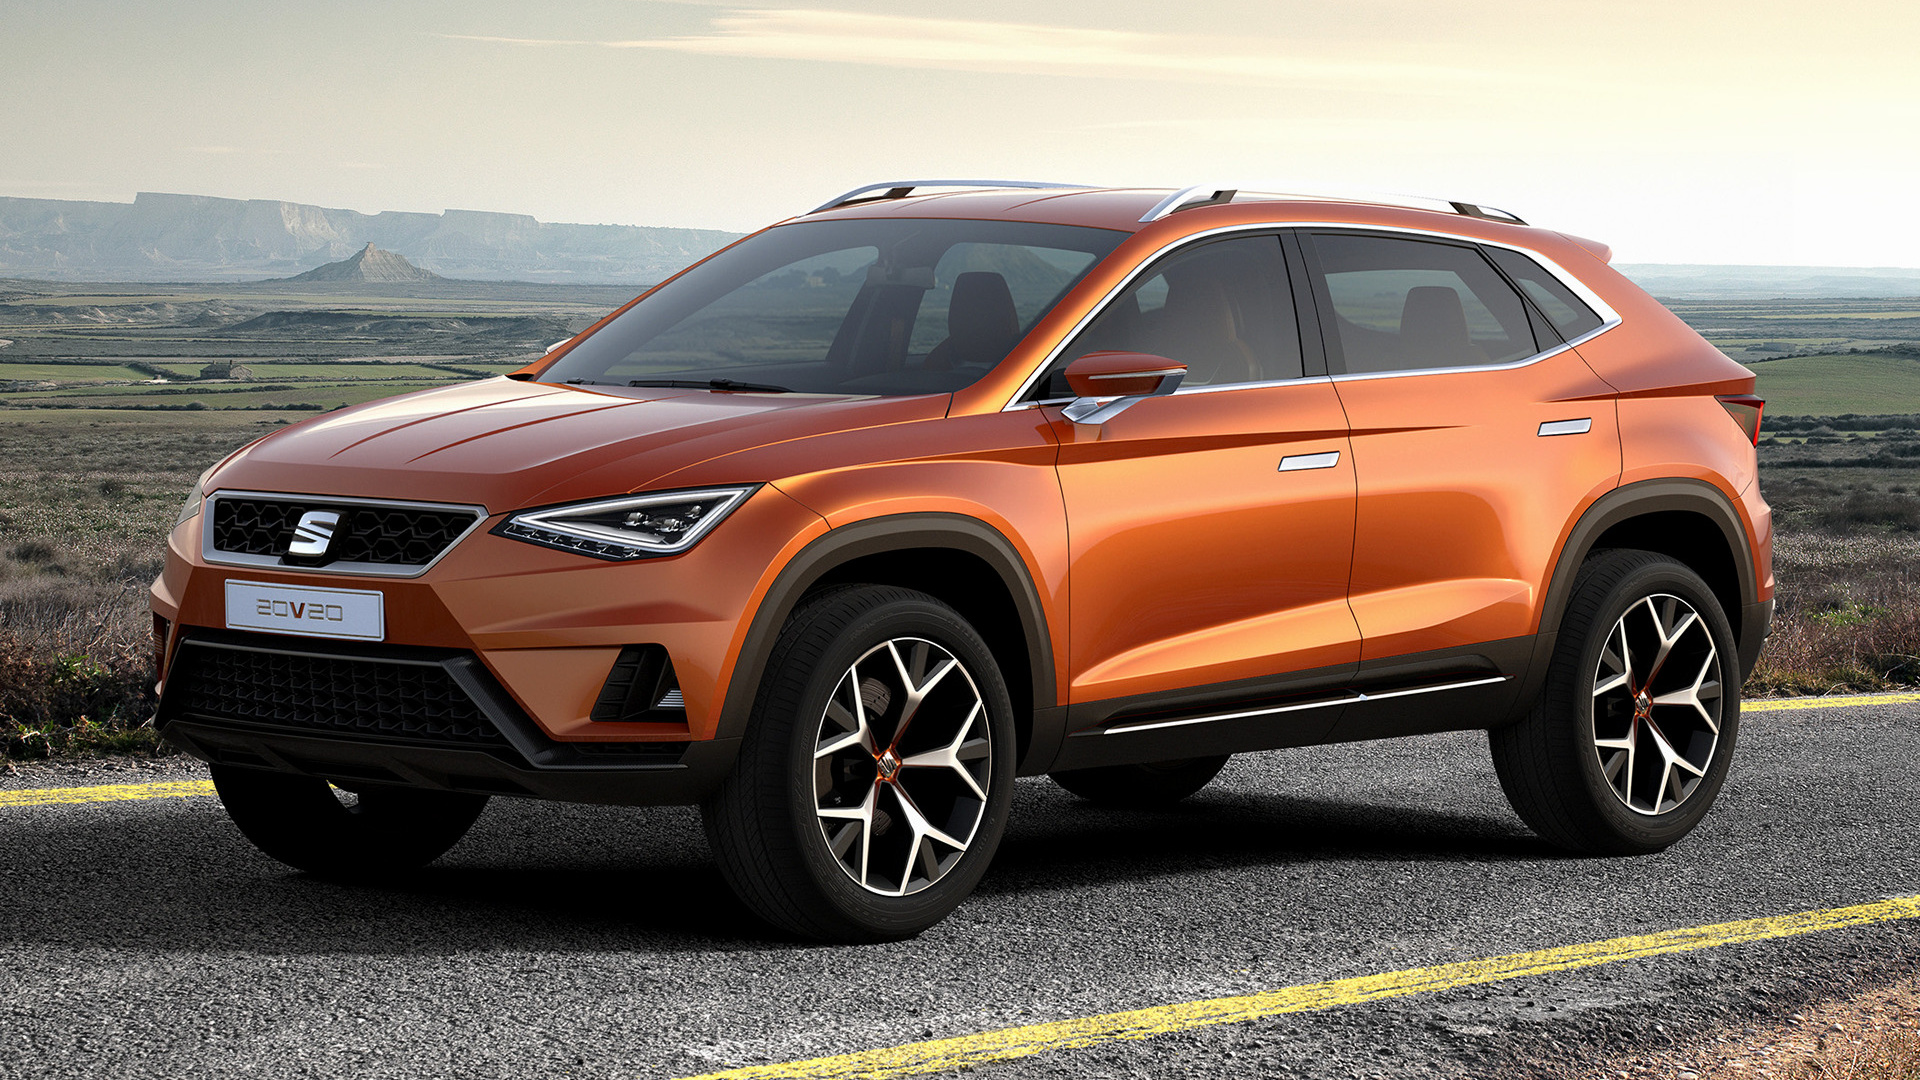 Seat 20v20 Concept 2015 Wallpapers And Hd Images Car Pixel